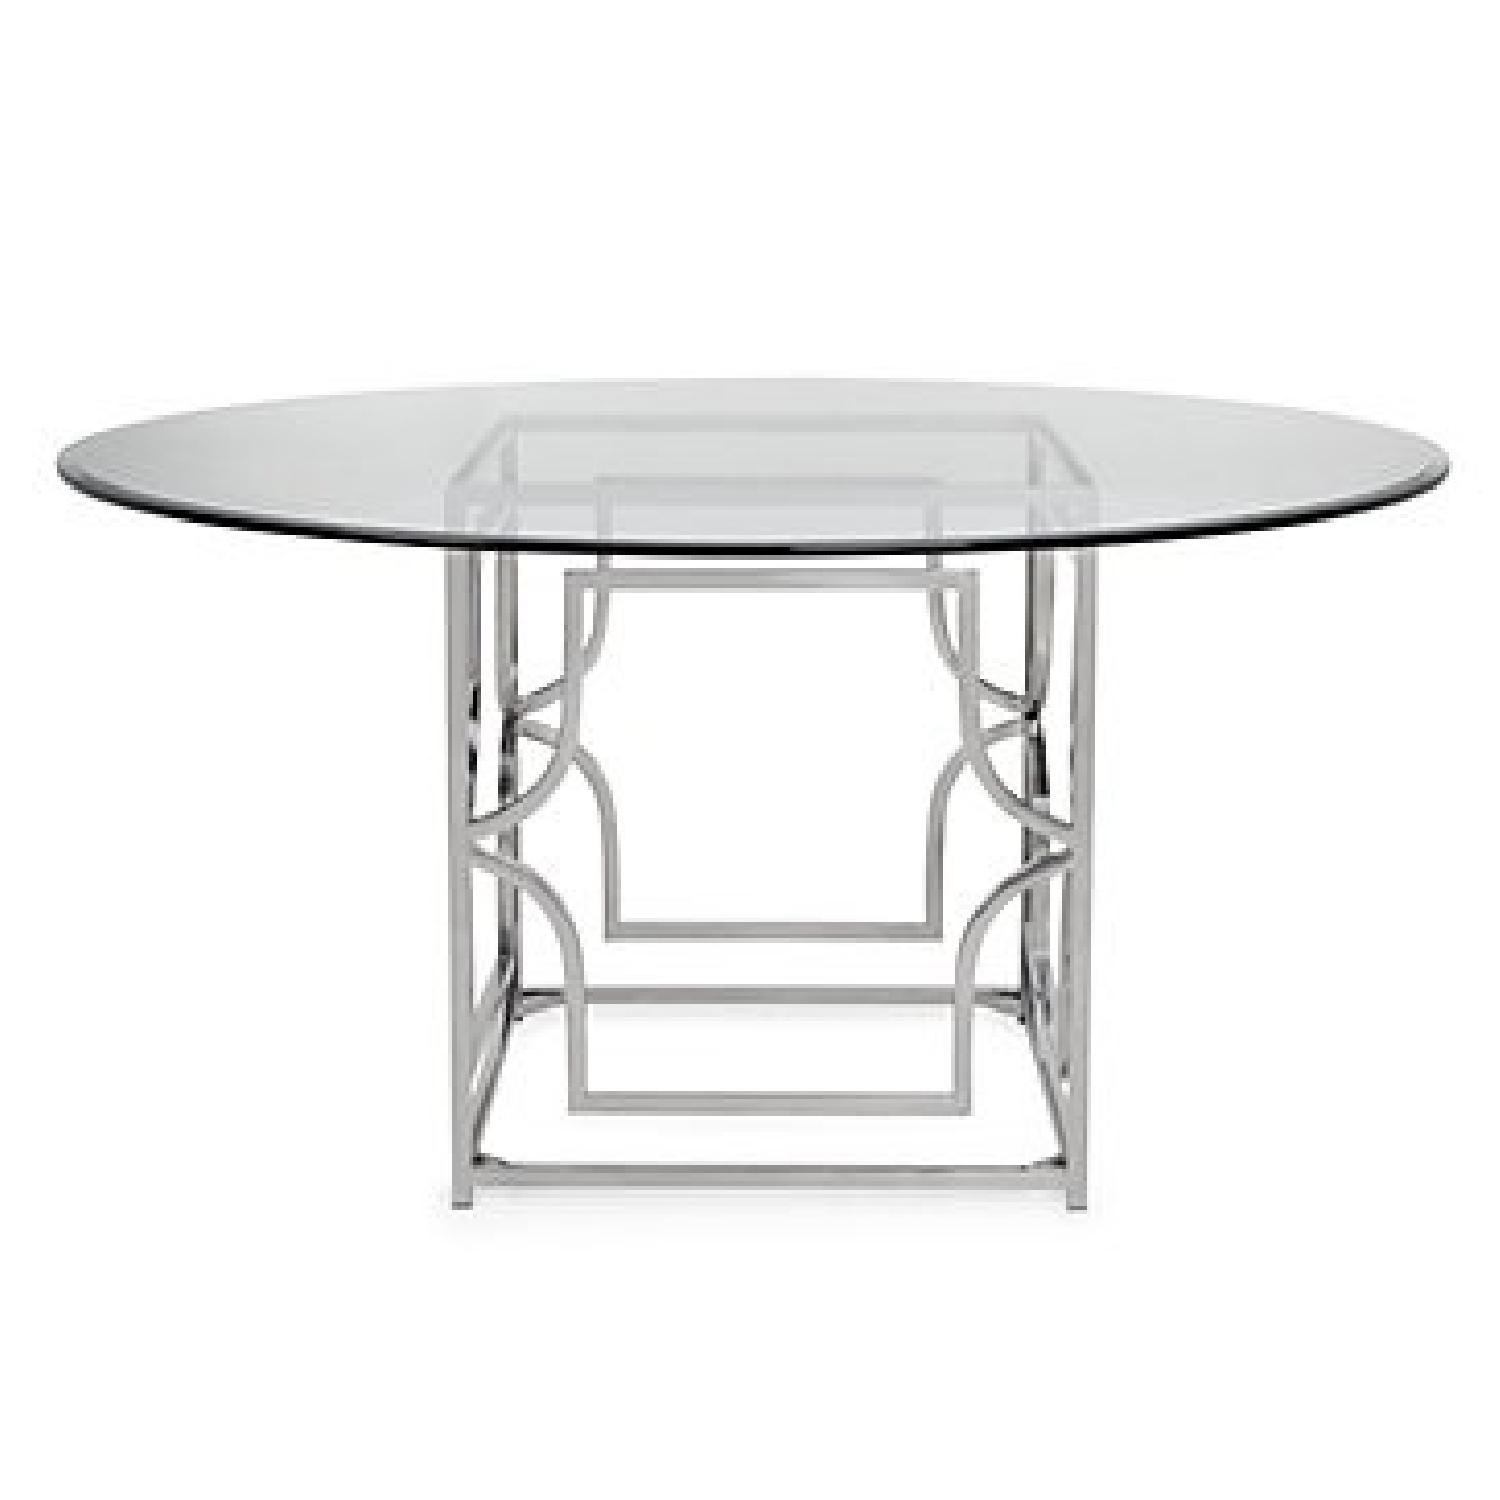 Z Gallerie Glass amp Chrome Dining Table AptDeco : 1500 1500 frame 0 from www.aptdeco.com size 1500 x 1500 jpeg 84kB